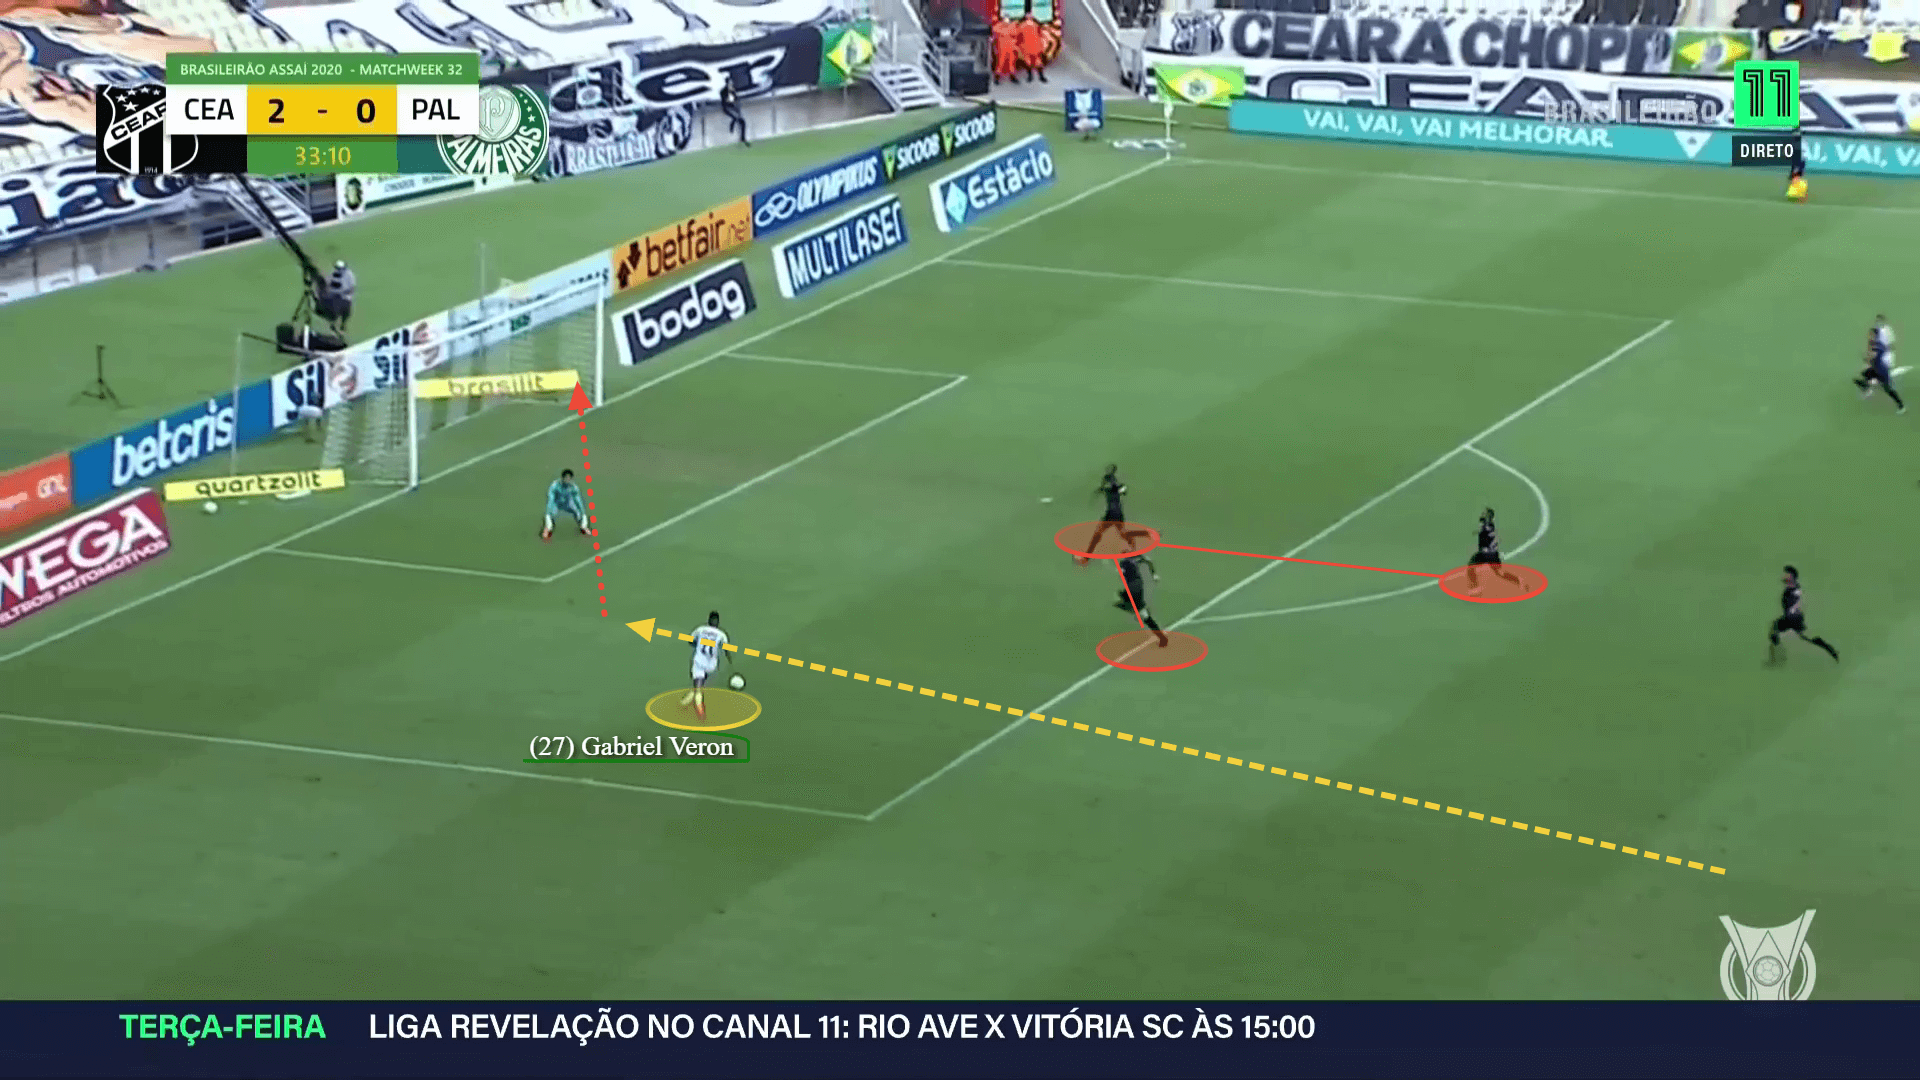 Links to Manchester: Who is the 18-year-old Brazilian wonder kid wanted by both sides of the city - scout report tactical analysis tactics